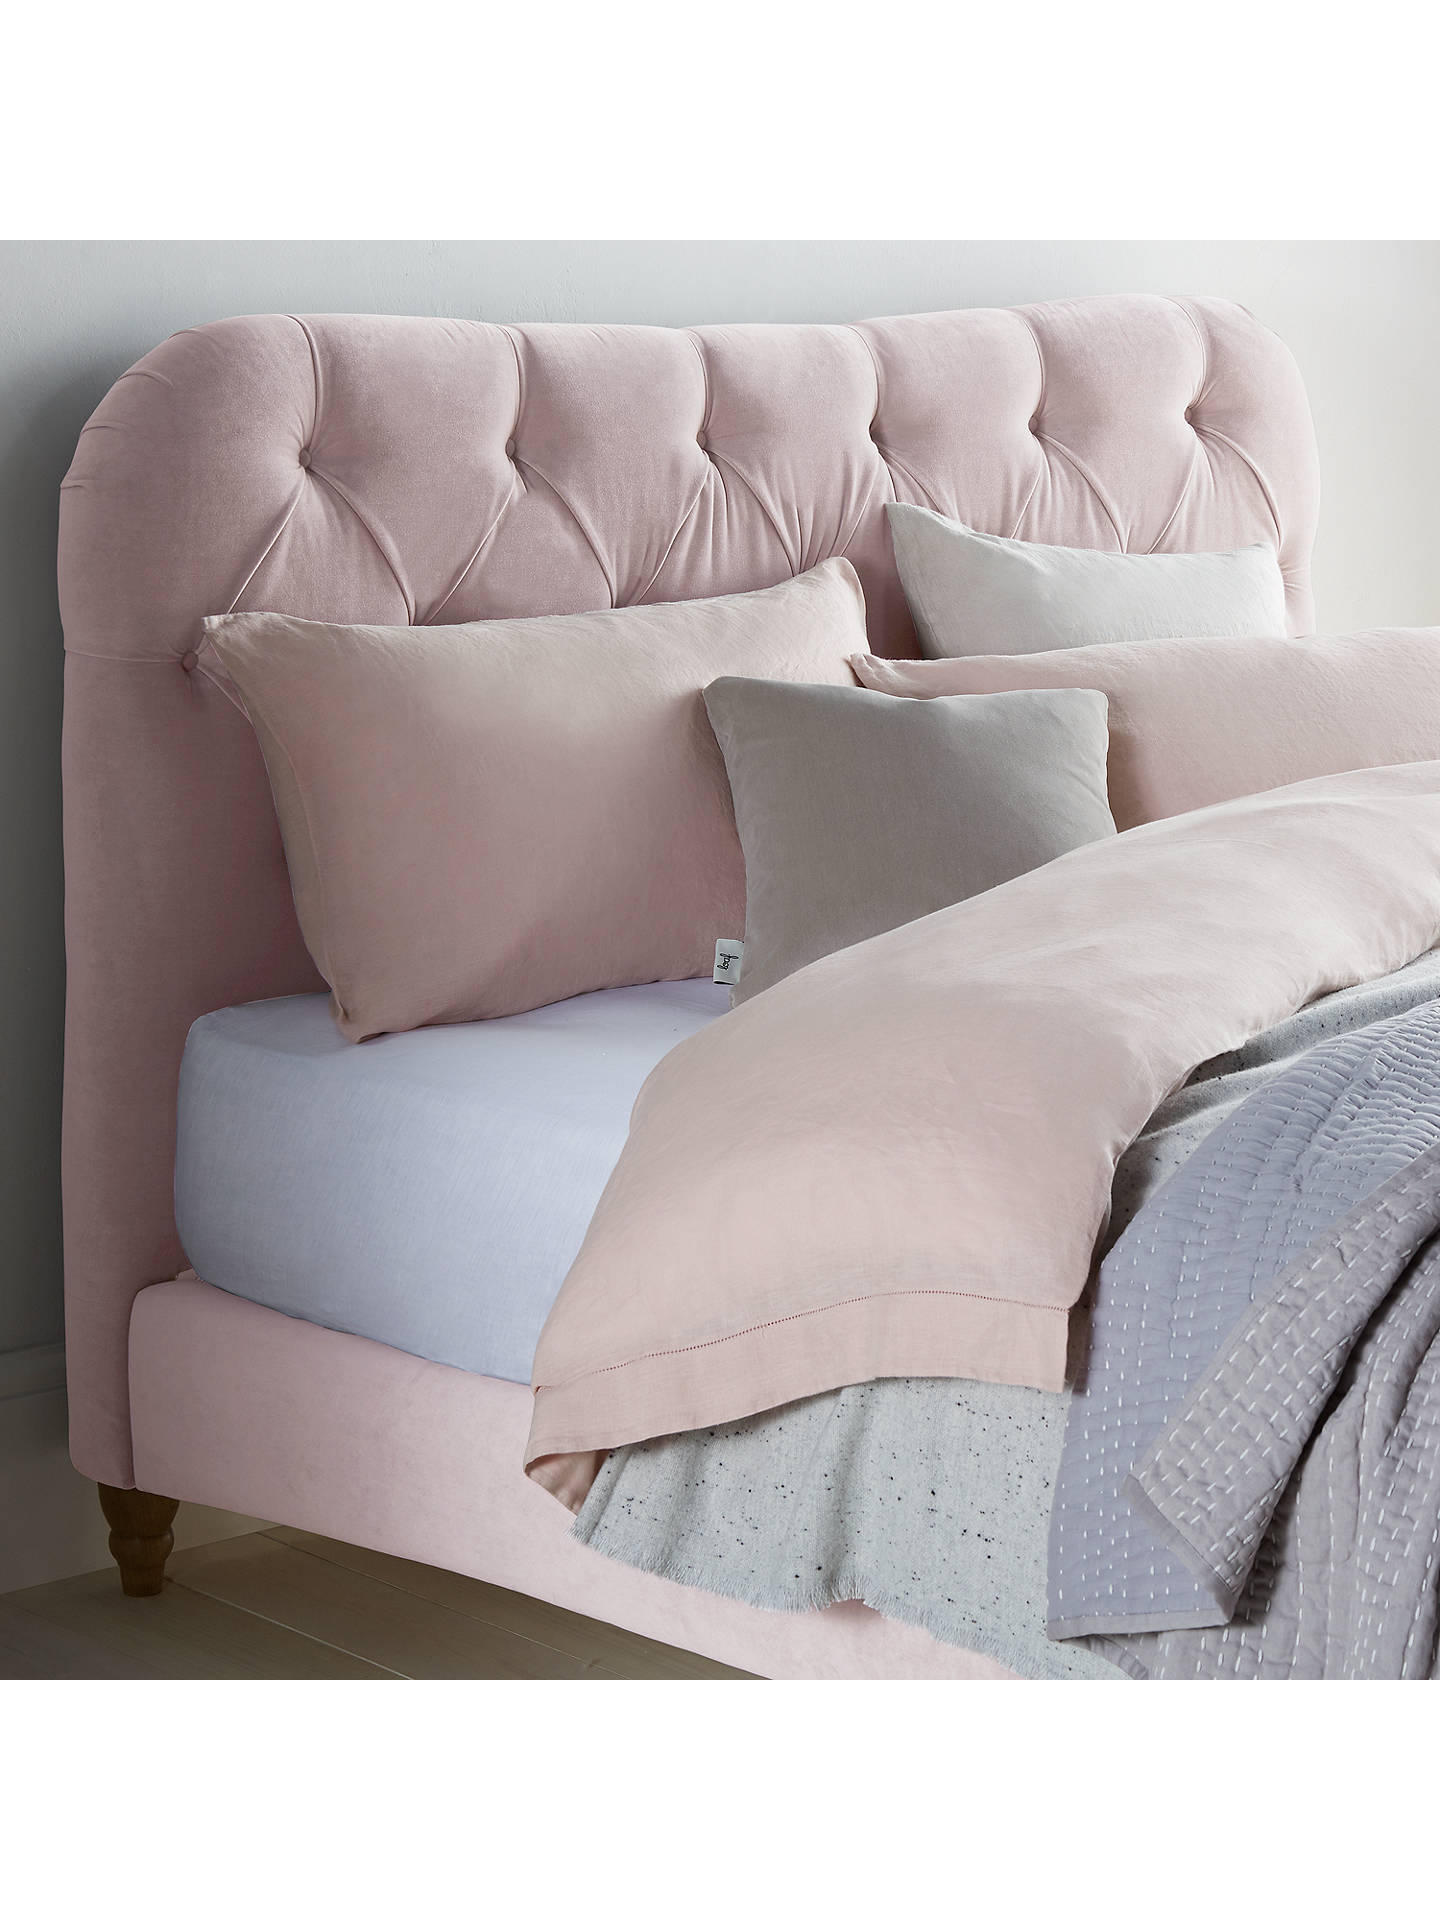 BuyBrioche Bed Frame by Loaf at John Lewis in Brushed Cotton, Double, Faded Pink Online at johnlewis.com